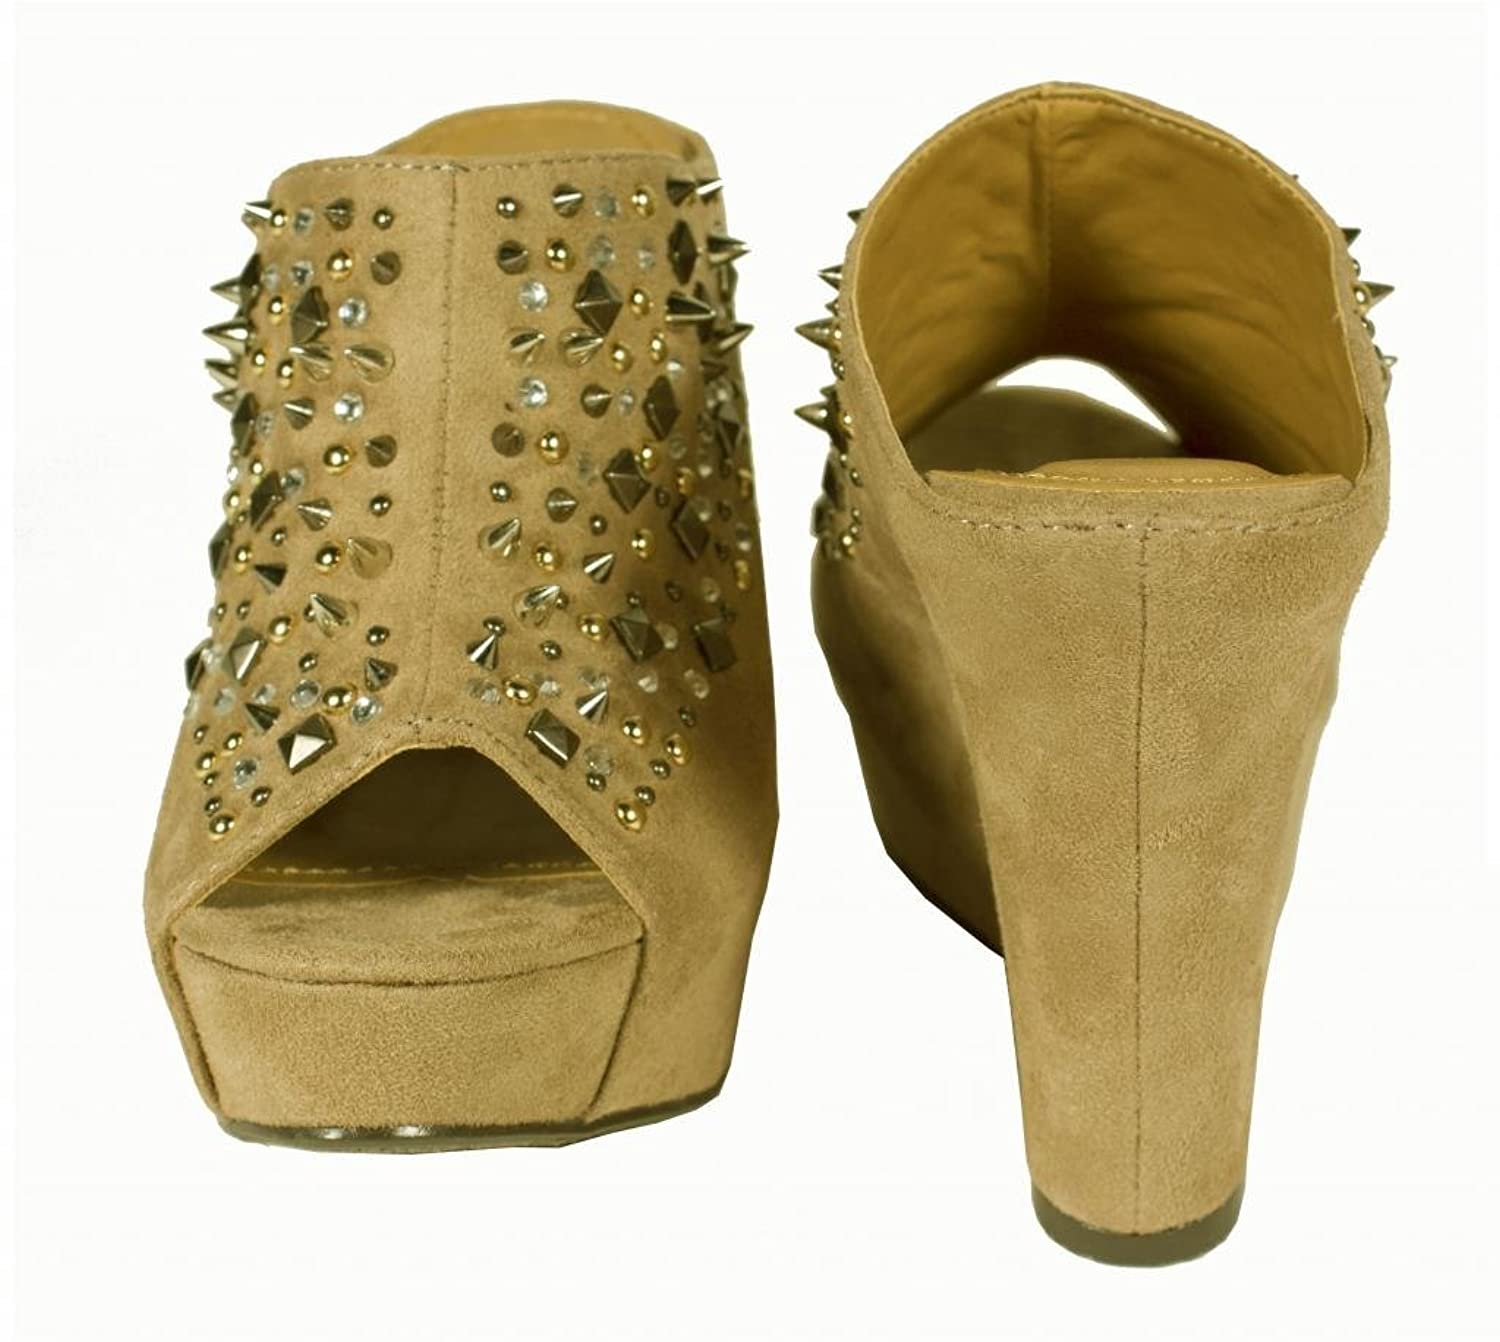 Burt! By Speed Limit 98 Sexy and Edgy Rhinestone and Spike Studded Peep-toe Mule Wedge with Clog Style Open Back in Taupe Faux Suede